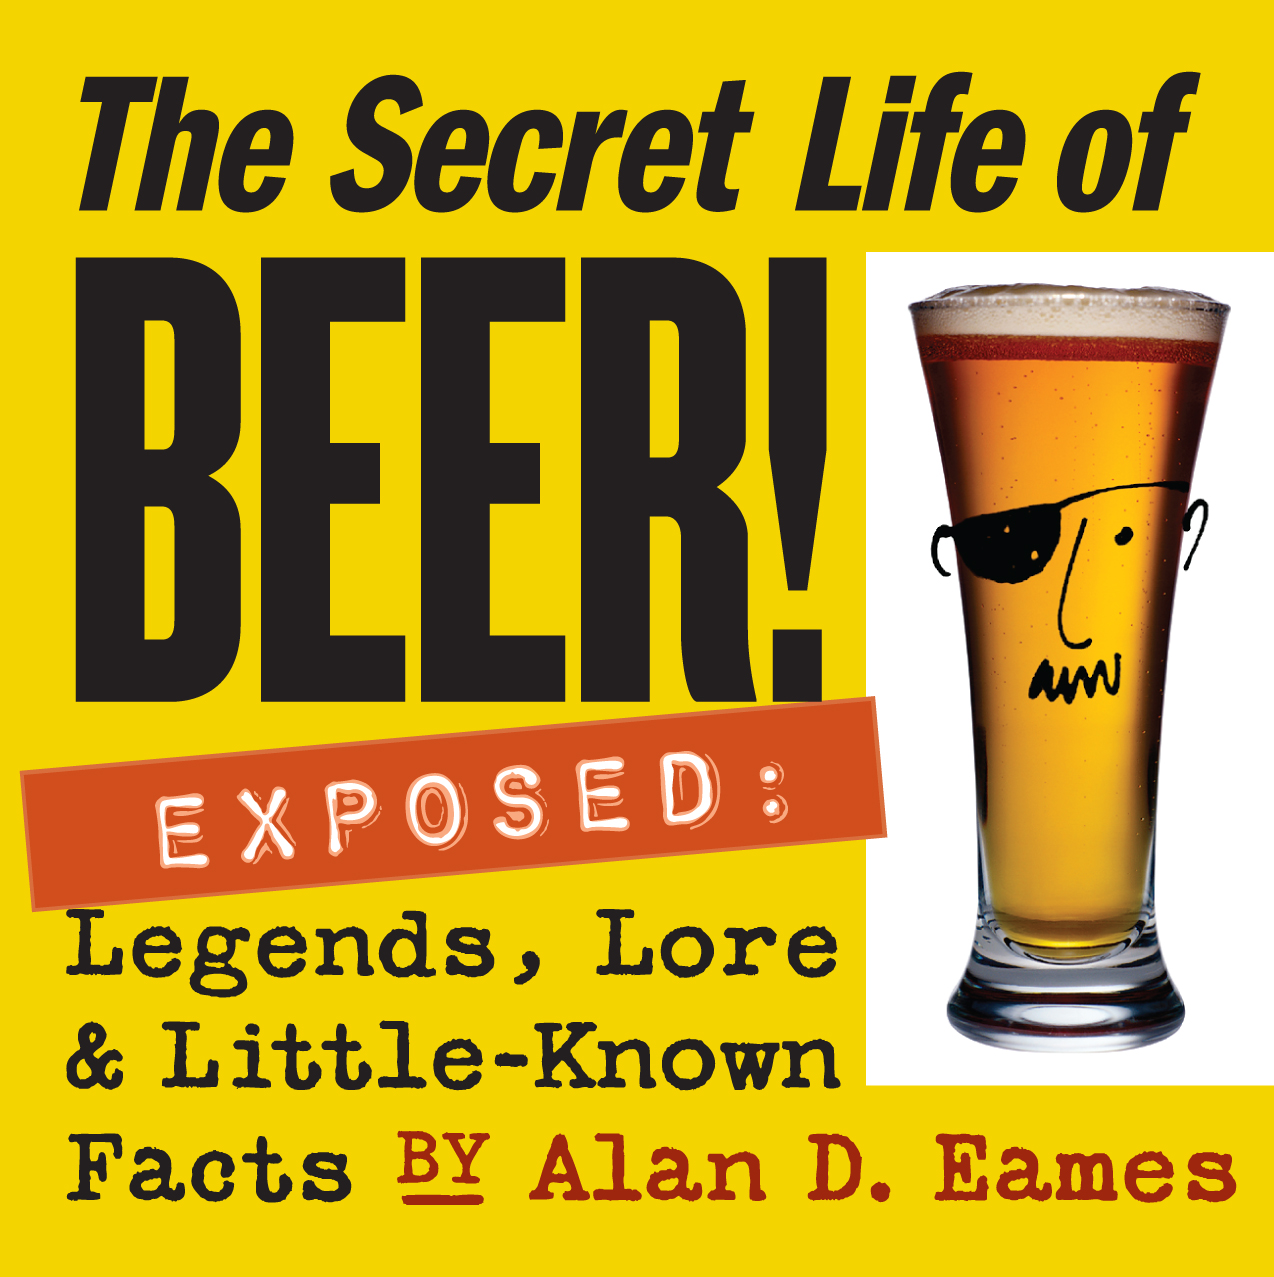 The Secret Life of Beer! Exposed: Legends, Lore & Little-Known Facts - Alan D. Eames